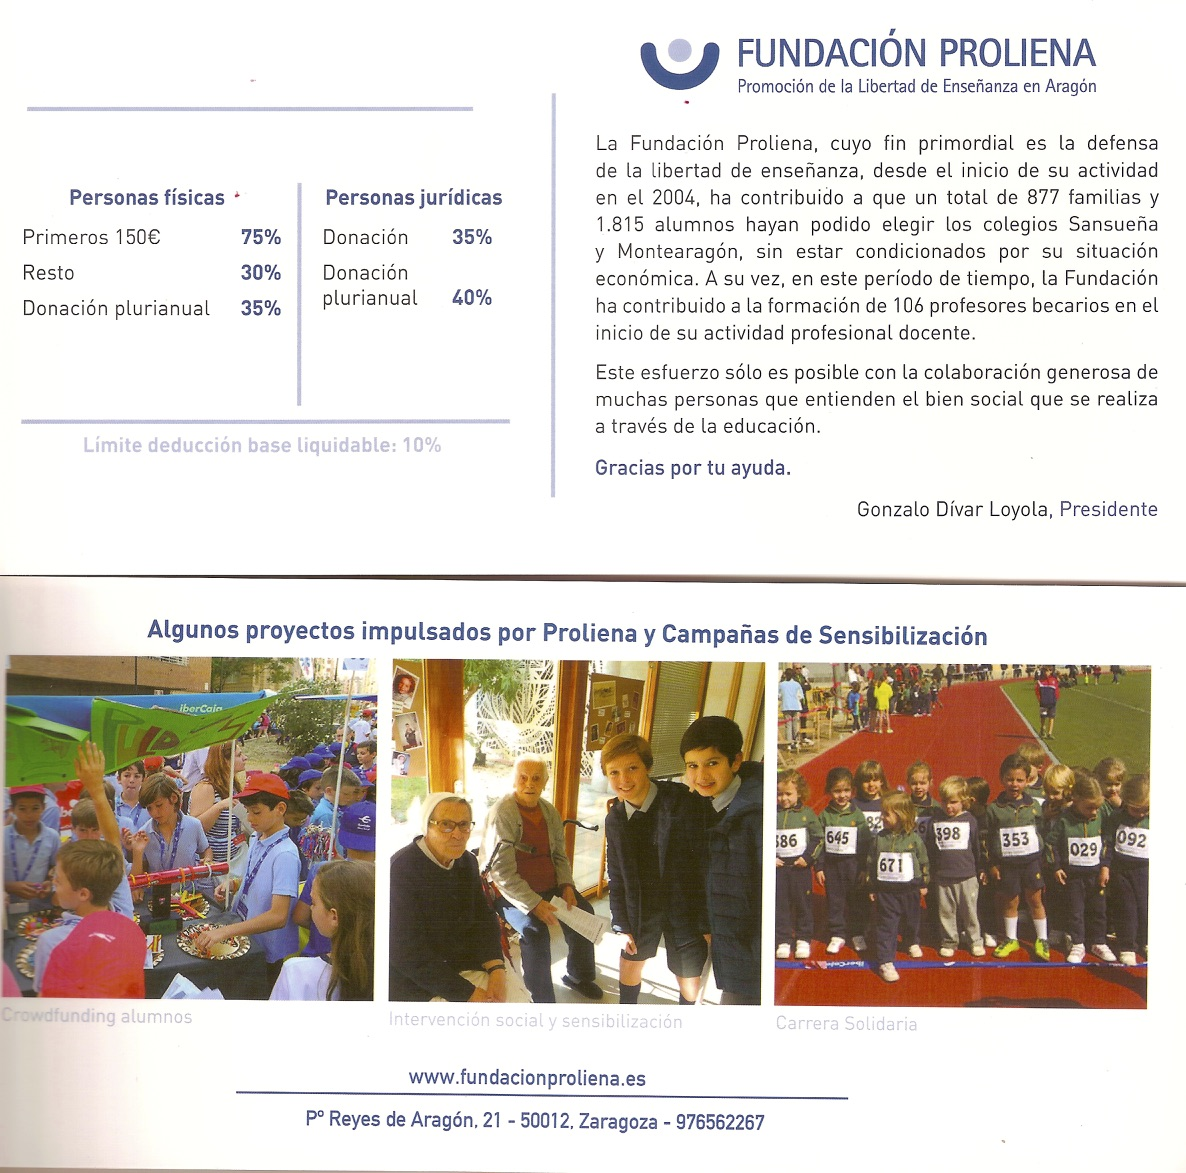 memoria-proliena-2017-folleto-2.jpg